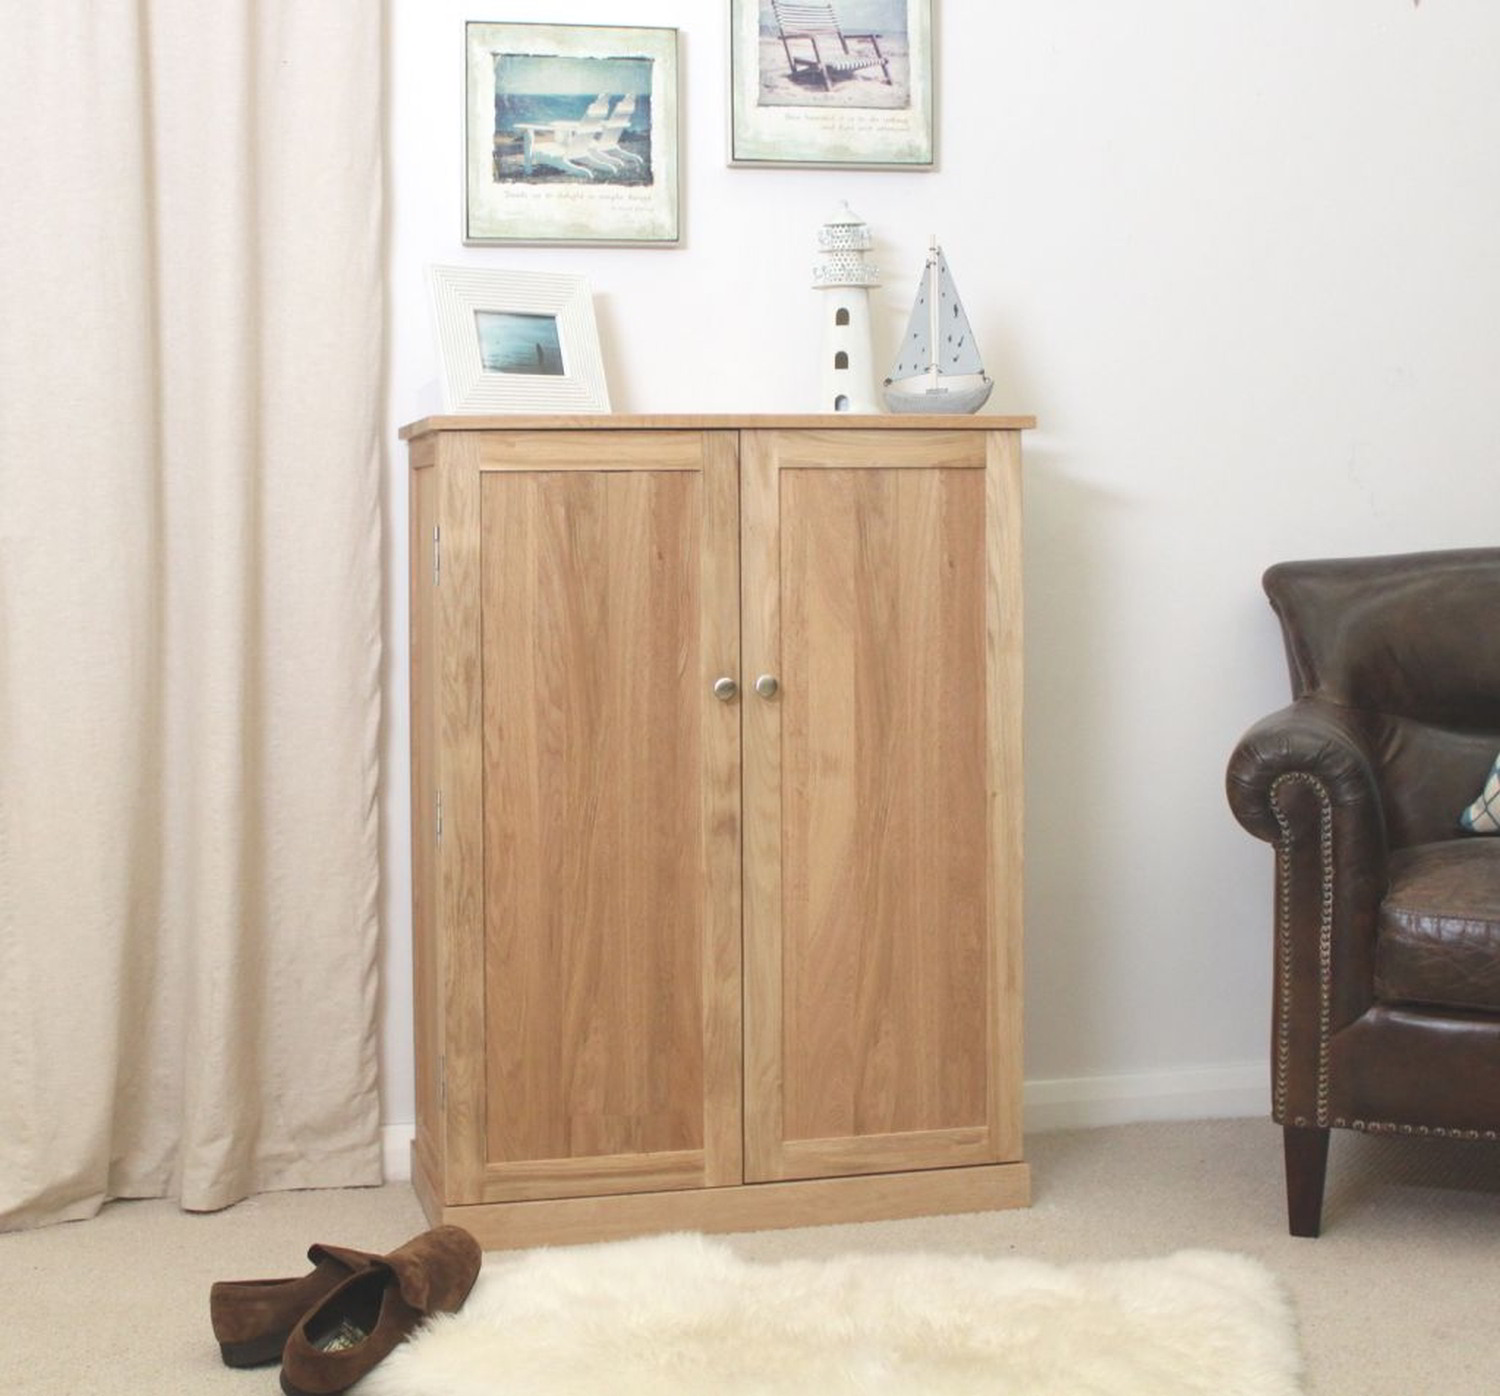 Mobel Solid Oak Furniture Shoe Storage Hallway Bench: Conran Solid Oak Furniture Large Hallway Shoe Storage